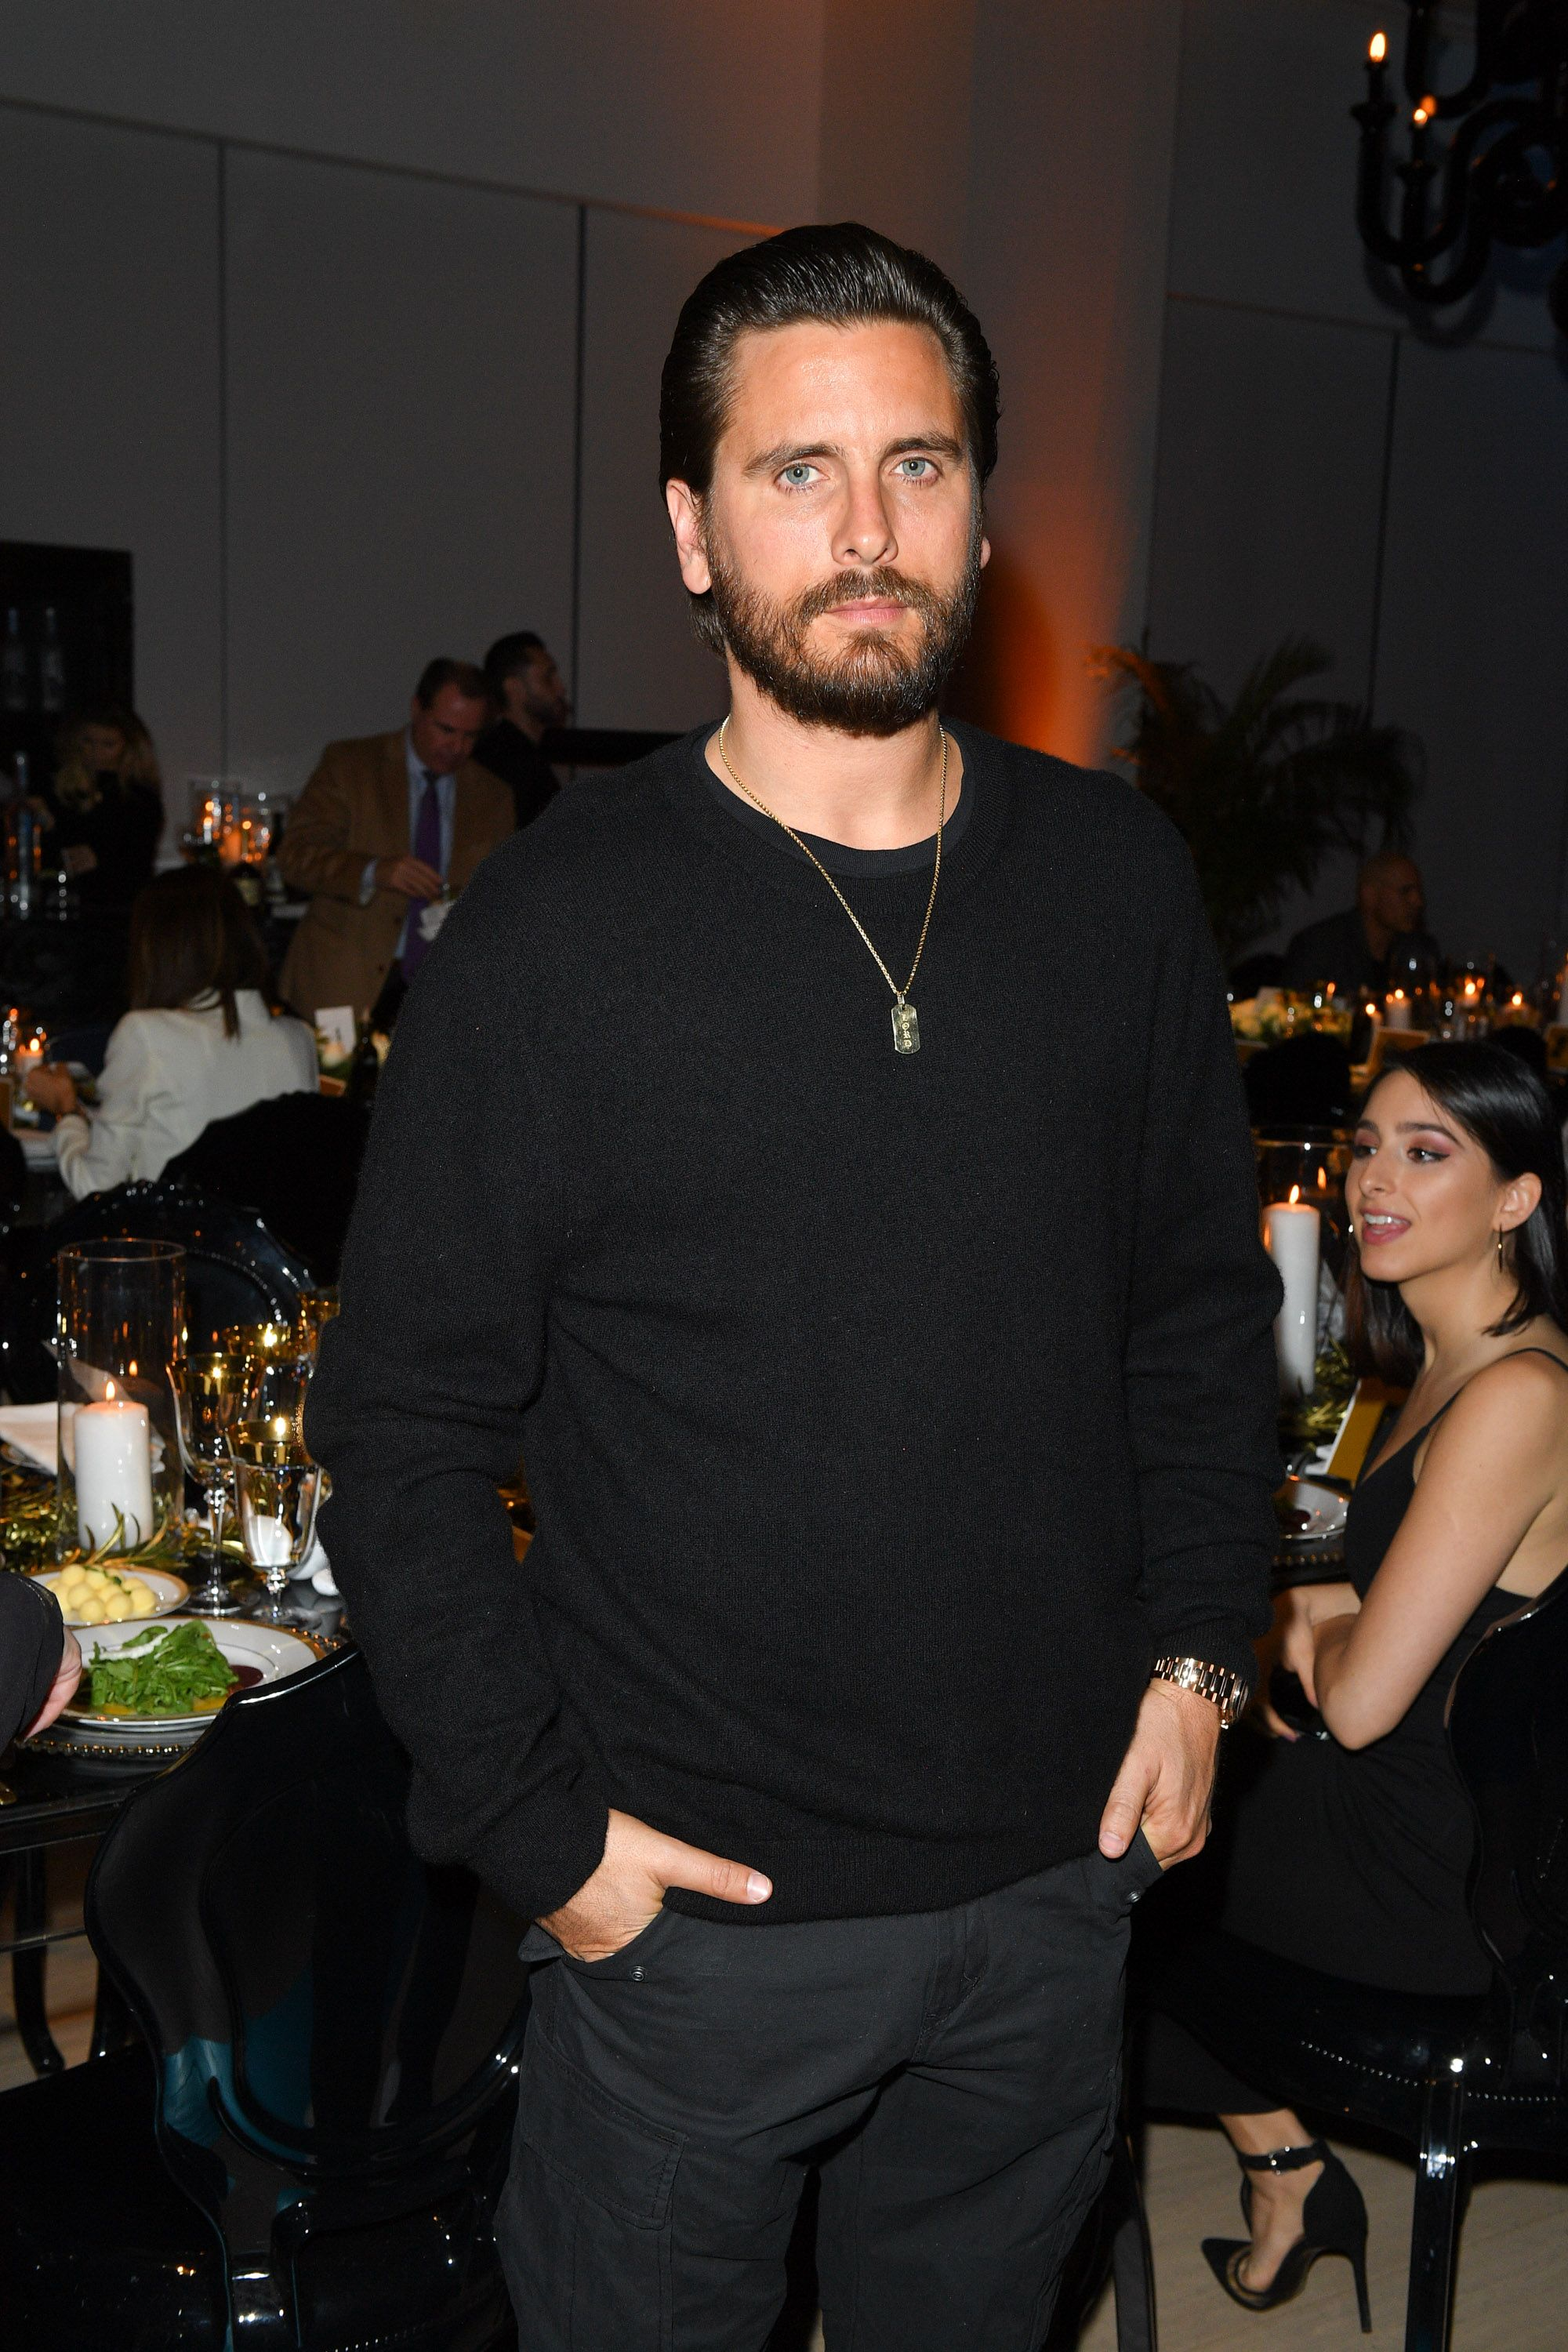 Scott Disick Is Getting His Own KUWTK Spin-Off Flipping and Renovating Houses